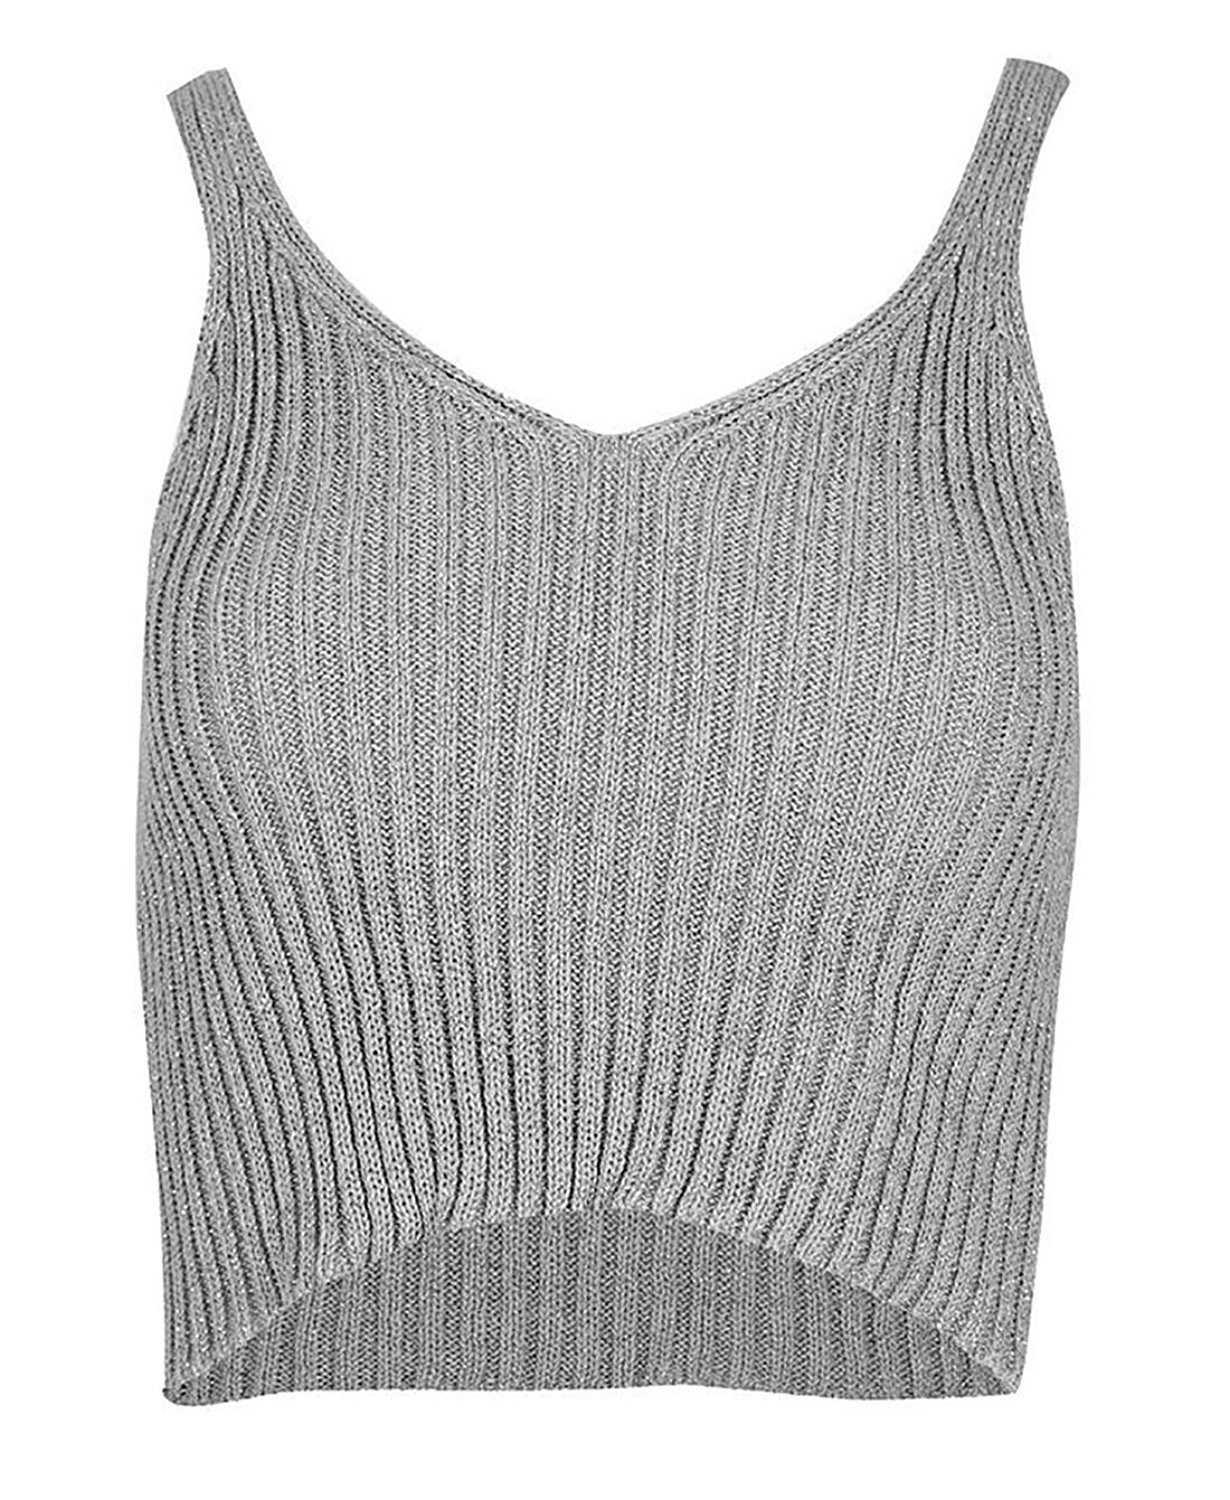 87ab61f33fa Get Quotations · MA ONLINE Ladies Metallic Knitted Ribbed Lurex Crop Top  Womens V Neck Sleeveless Vest Top US